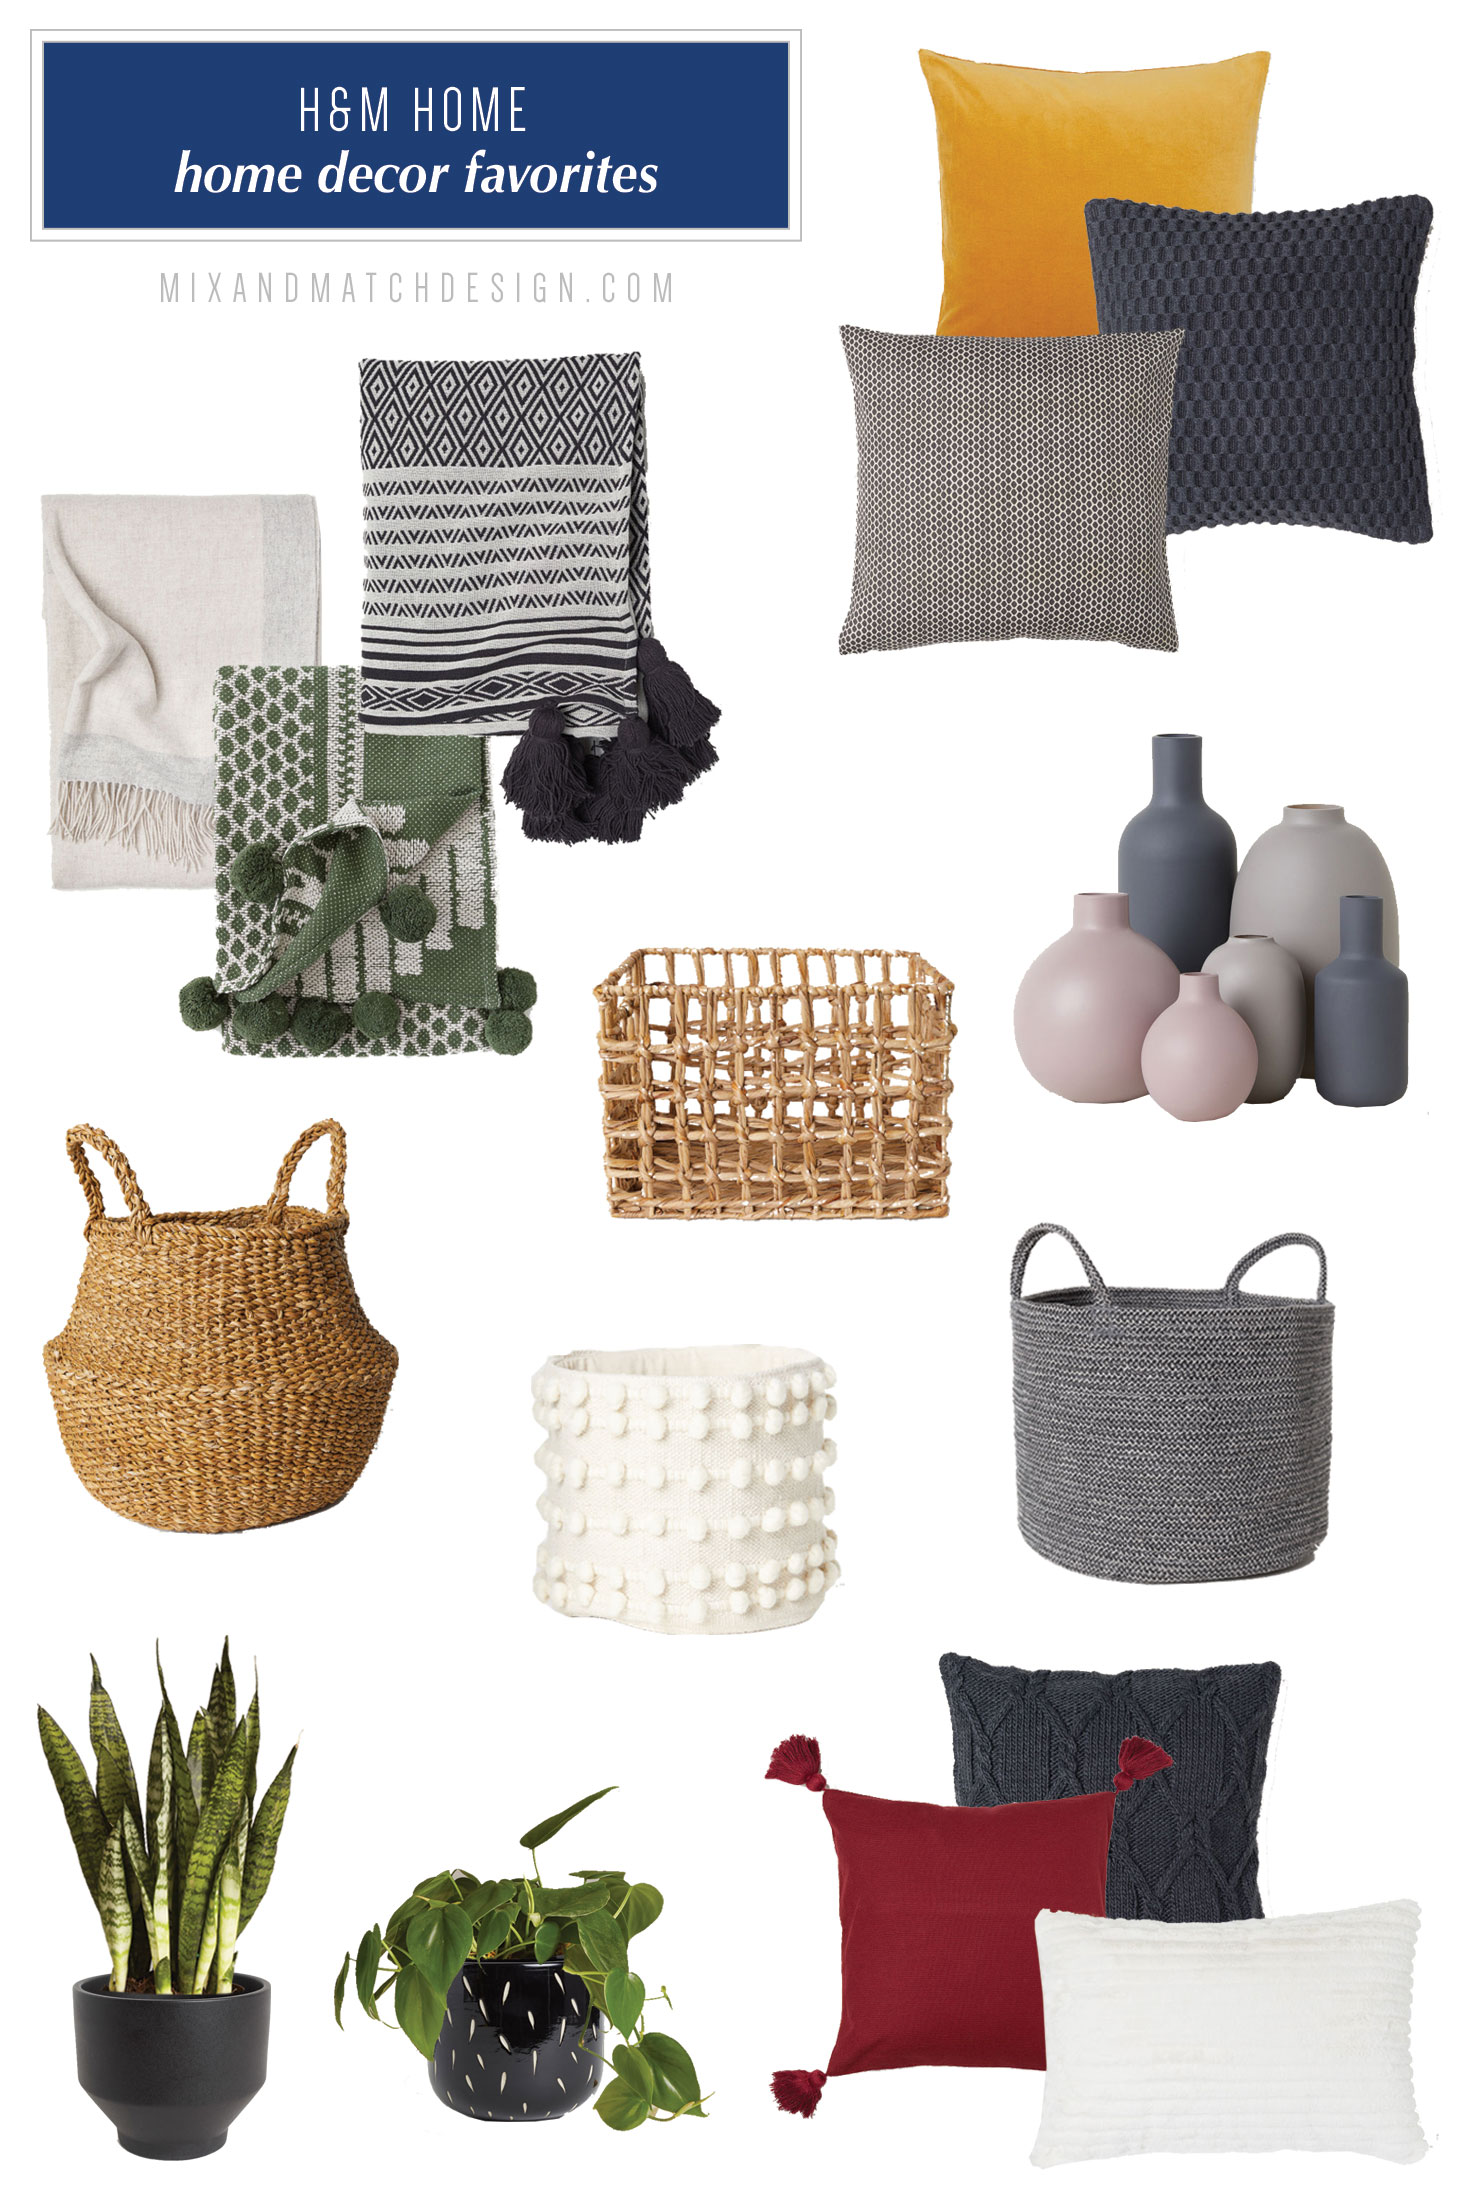 H&M Home is one of my favorite places to shop for affordable home decor and accessories, and I've rounded up a bunch of my favorites for you! They have a mix of styles ranging from boho to modern, and it's all budget-friendly. // #designerfinds #interiordesign #homedecor #moderndecor